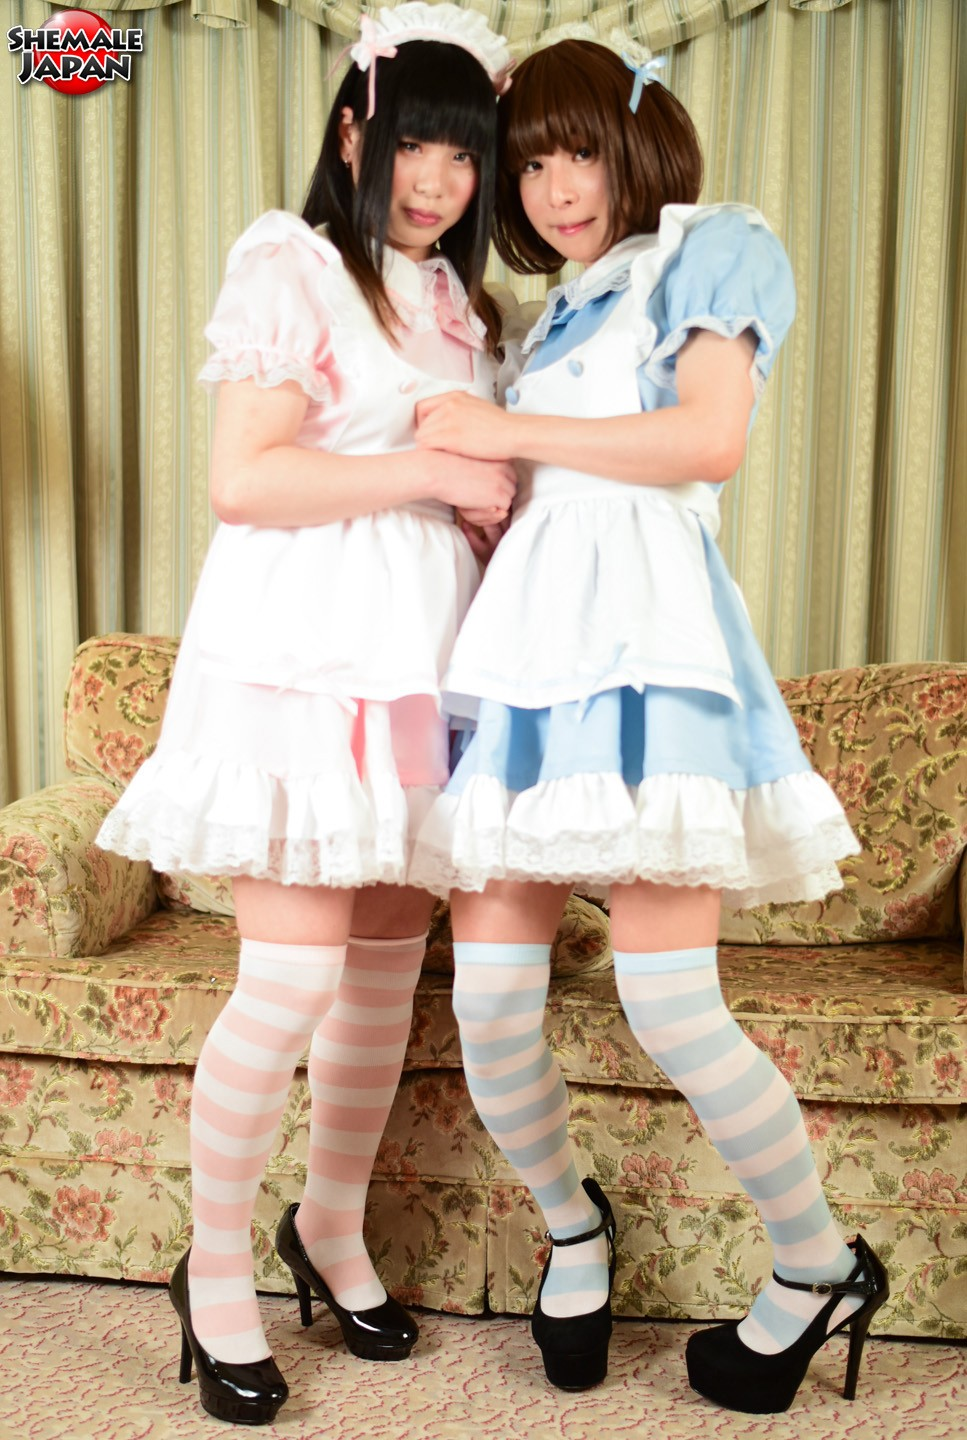 Japanese Shemale Cosplay Fuck Party with Himena and Miharu